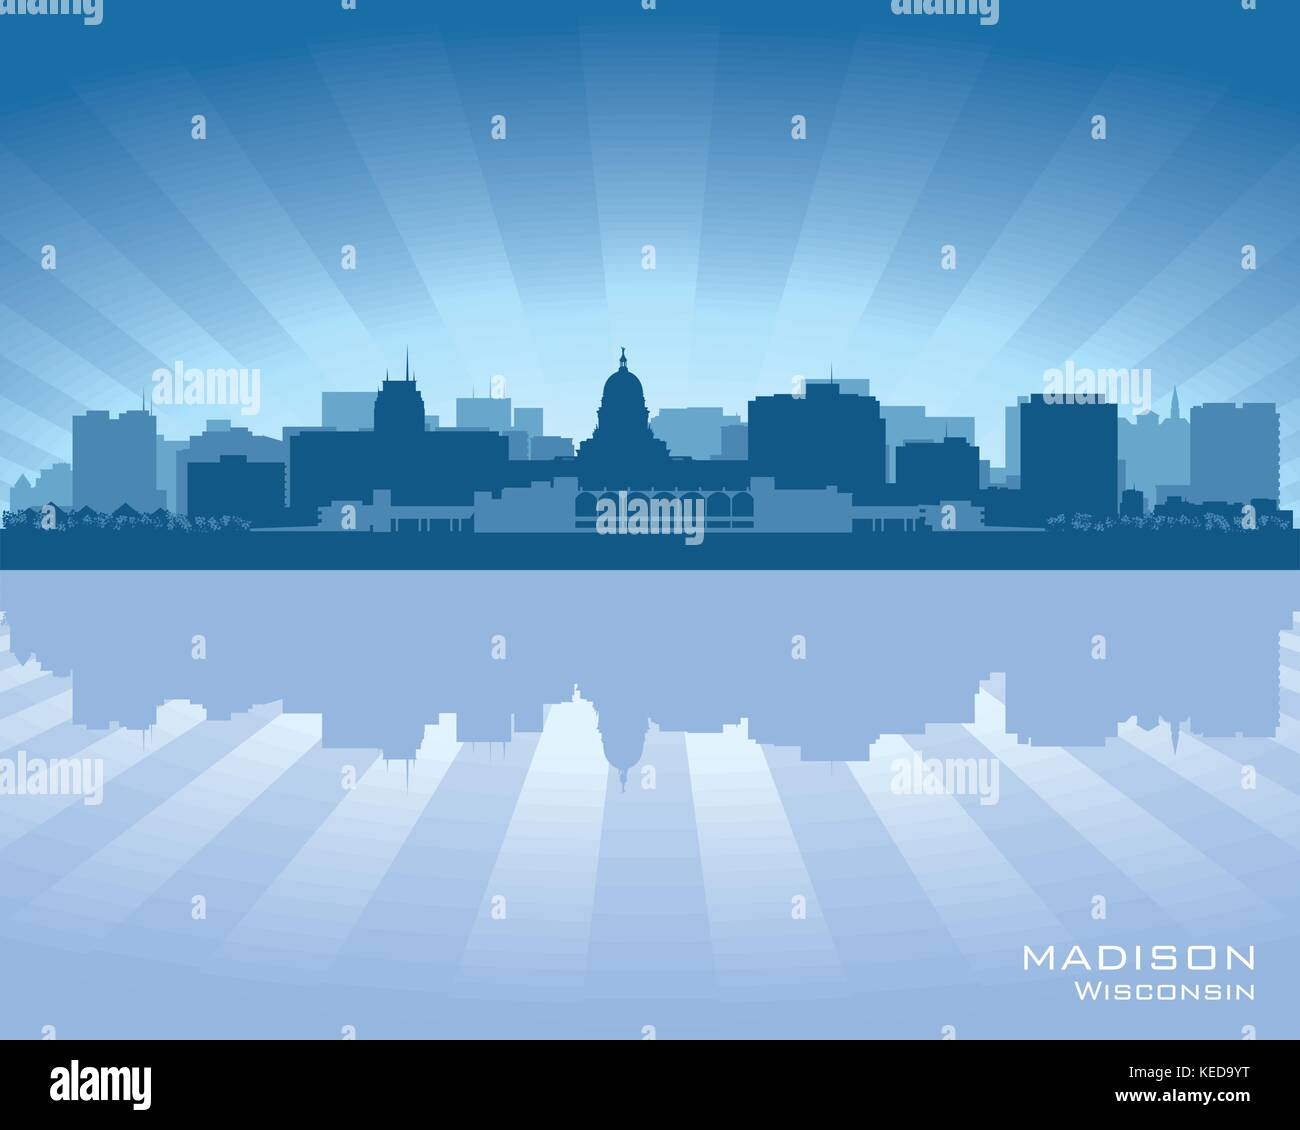 madison wisconsin skyline city silhouette stock vector art